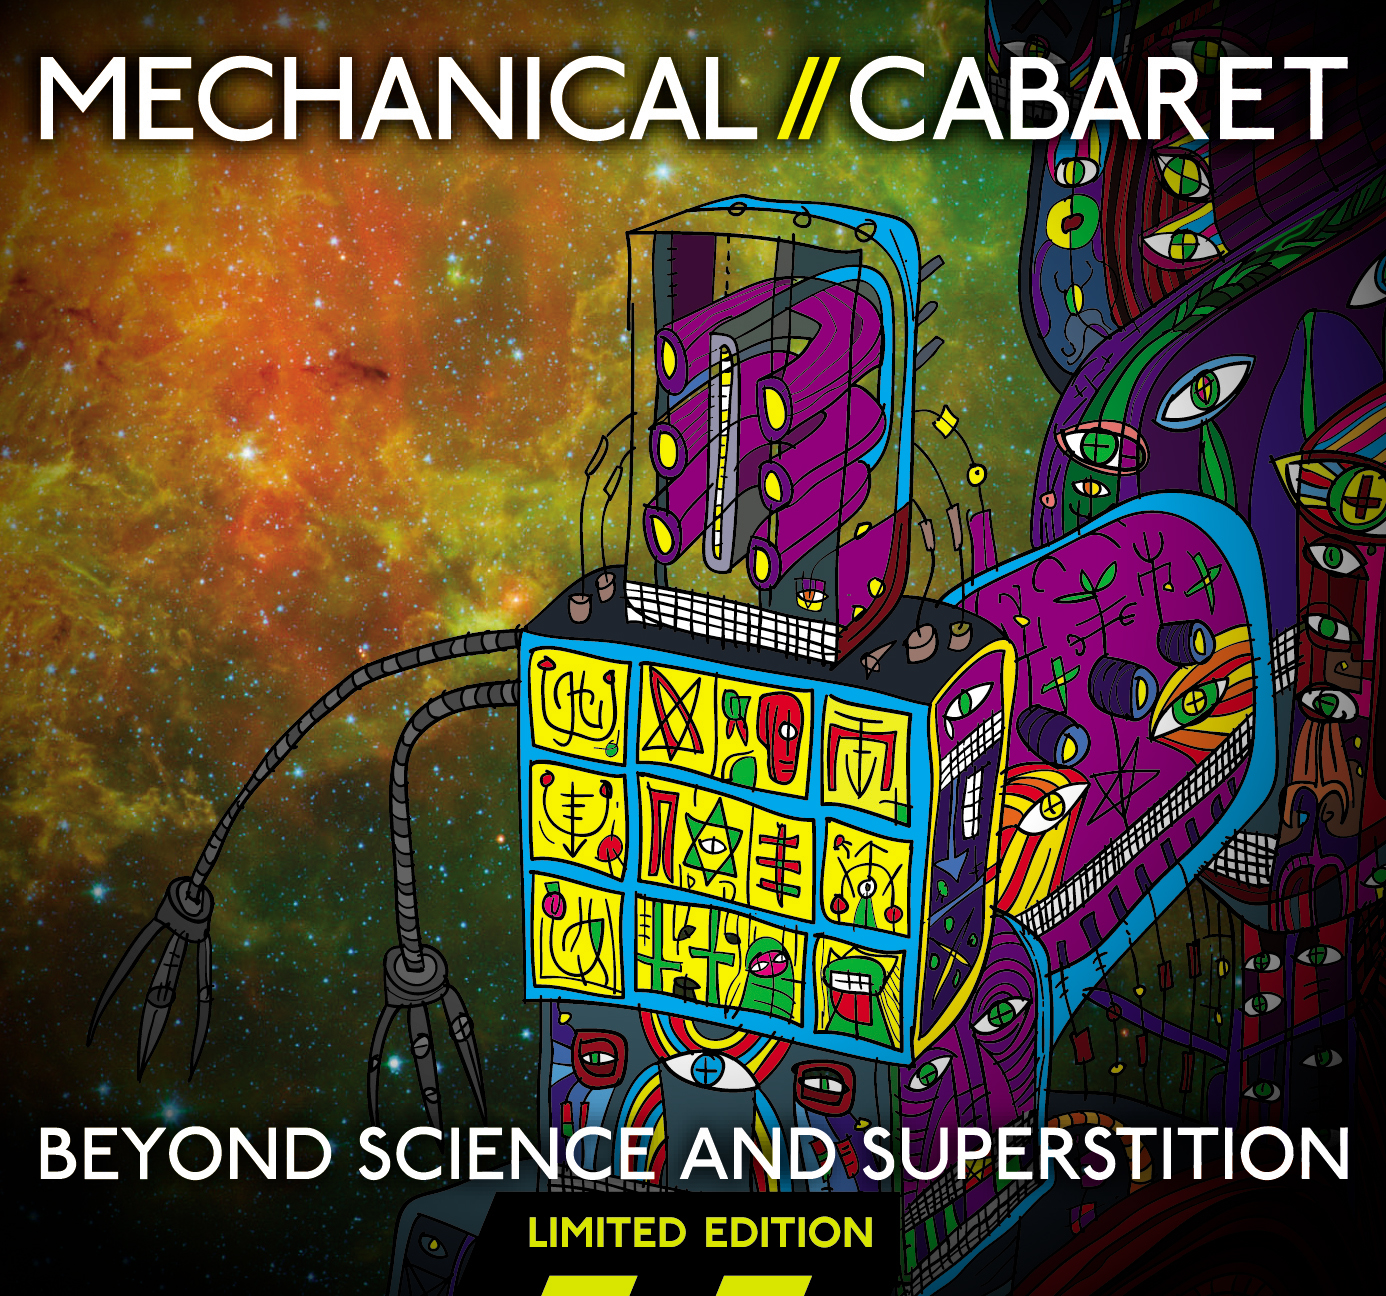 Mechanical Cabaret Beyond Science And Superstition